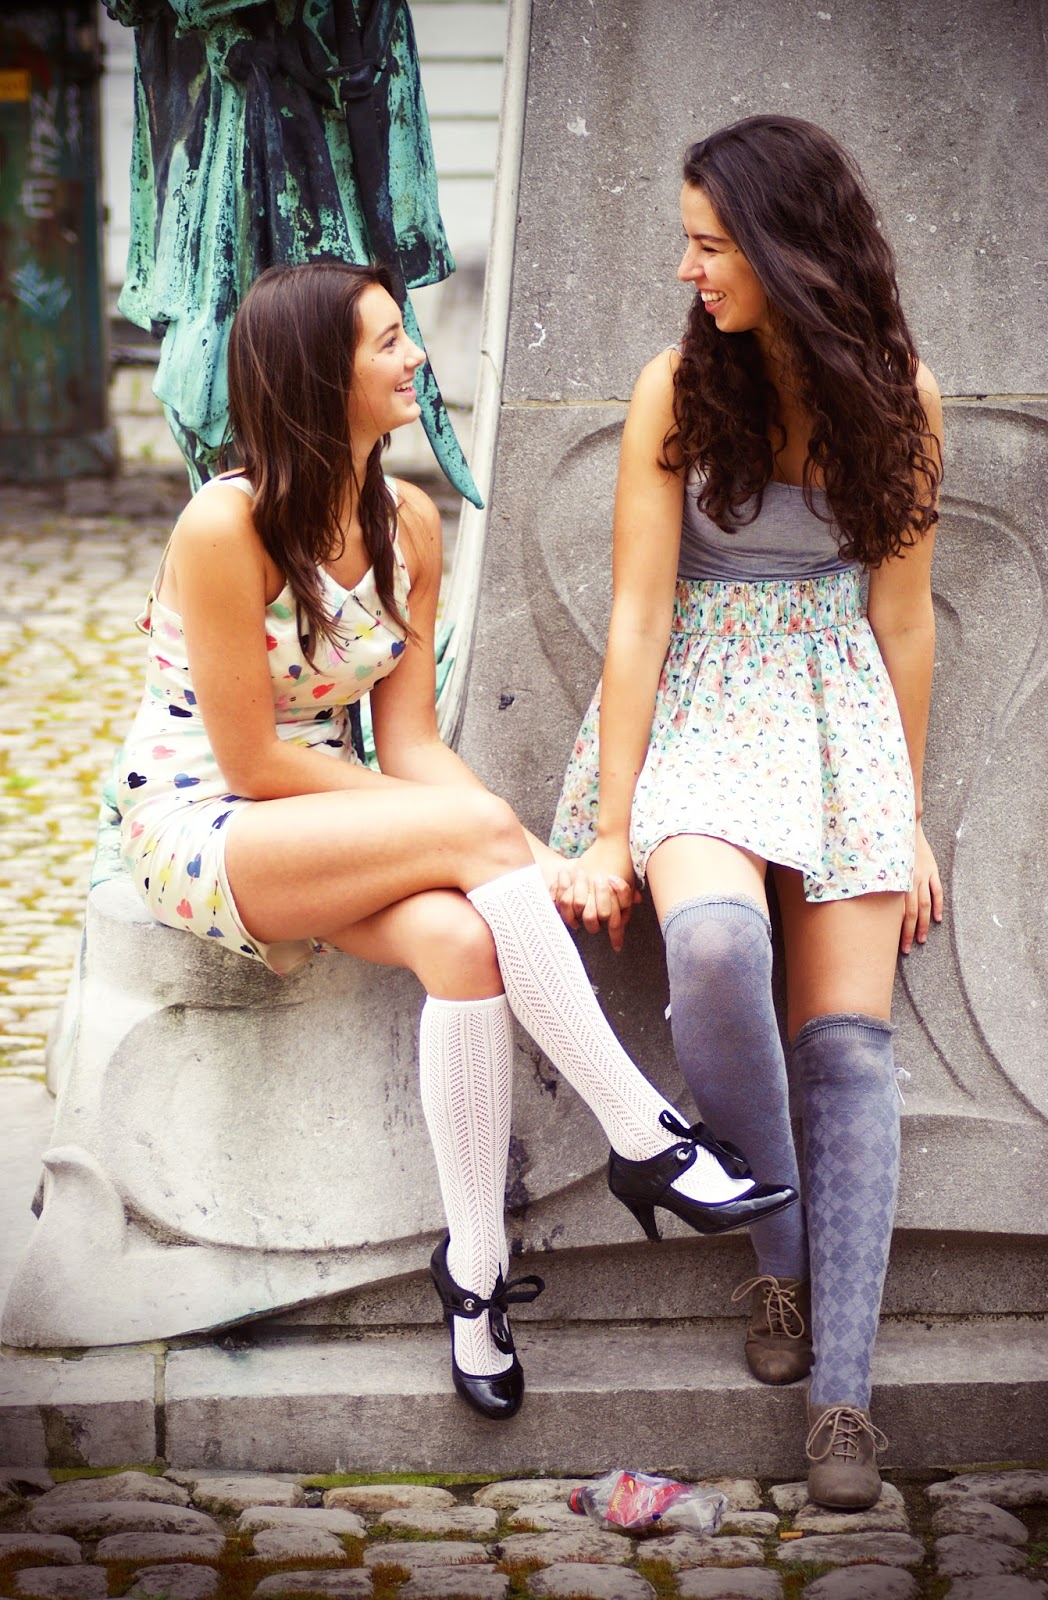 How To Get The Best Images Out of Friendship Photoshoots - Louisa ...